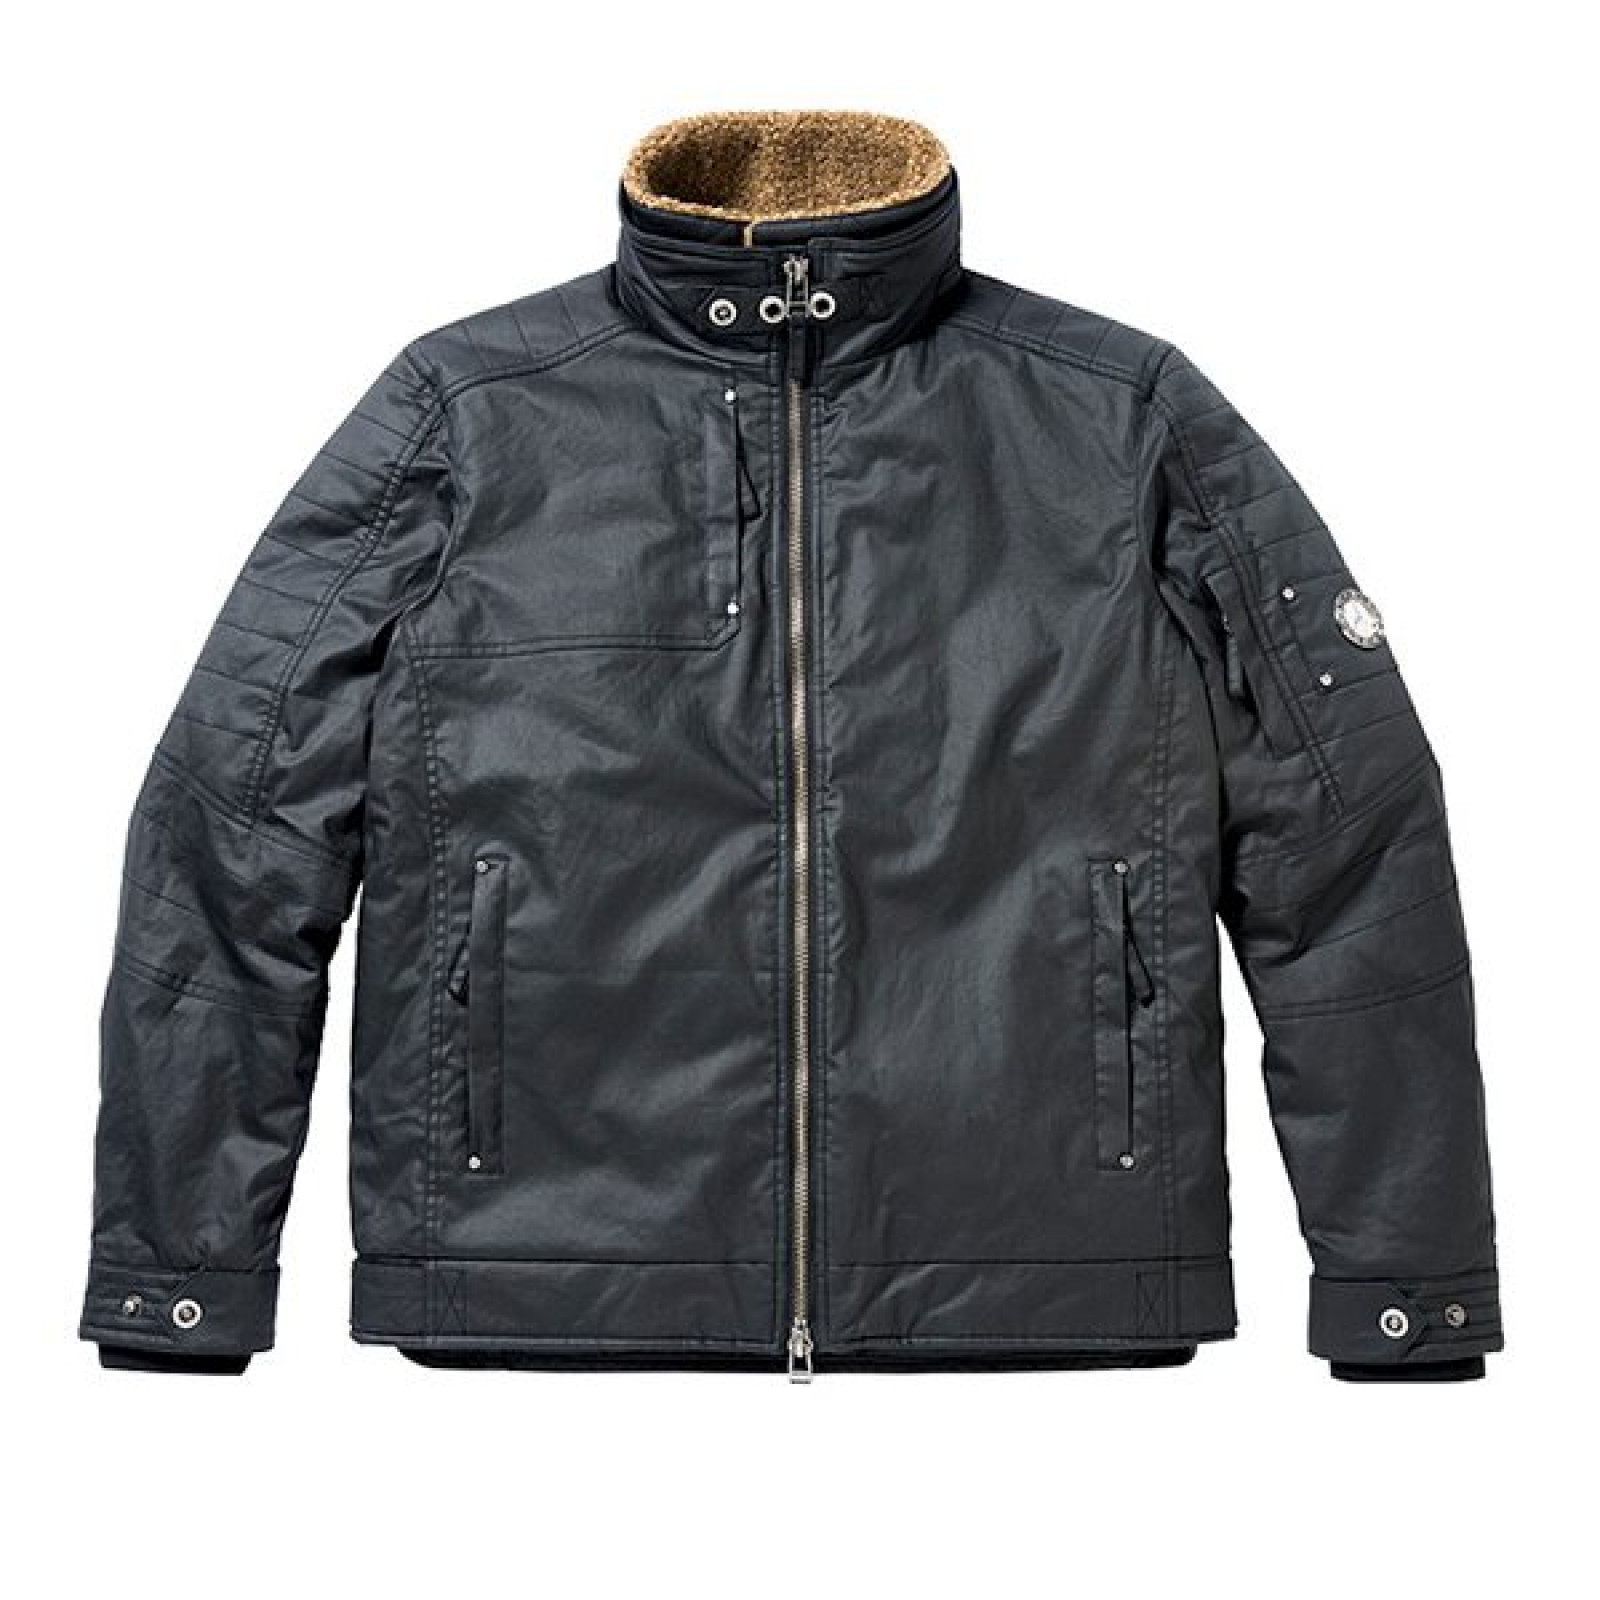 Mercedes benz official men 39 s 2 in 1 cabriolet jacket for Mercedes benz jacket